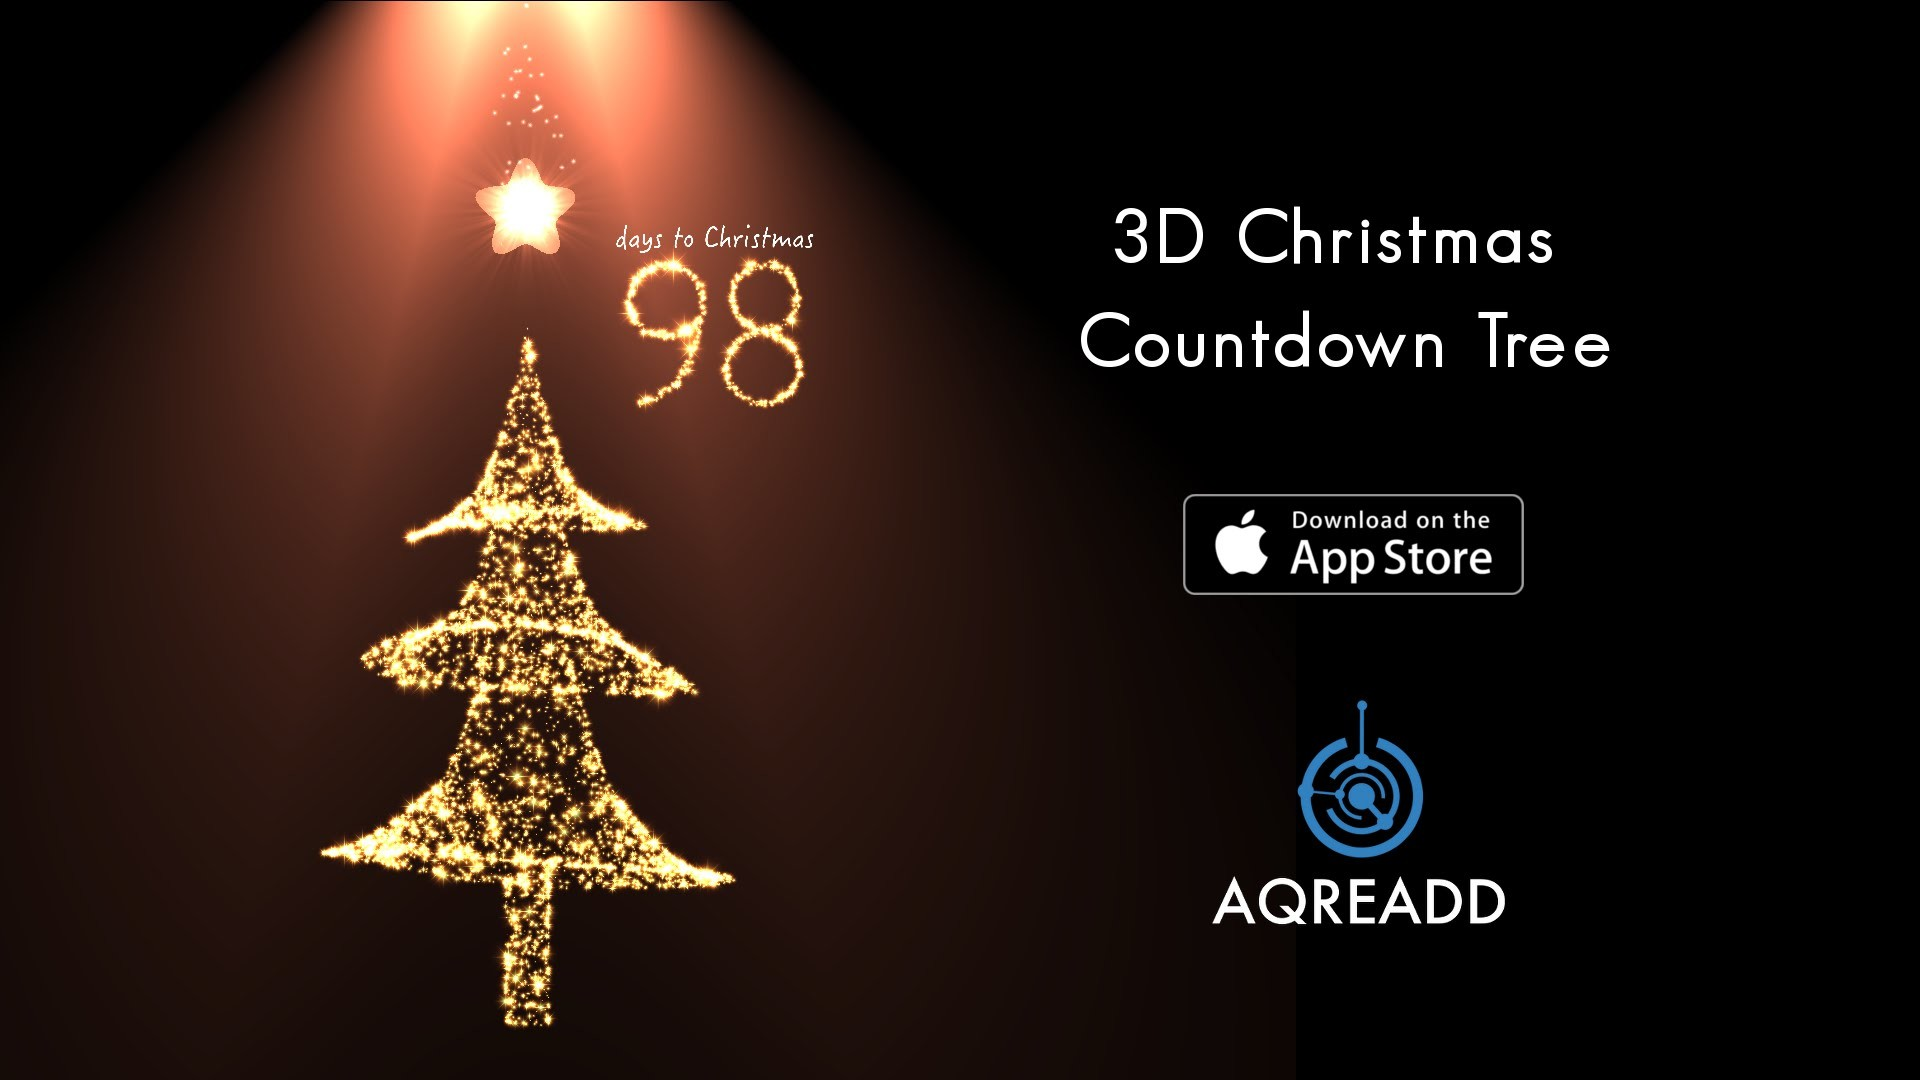 1920x1080 3D Christmas Countdown Tree for iPhone 6, iPhone 6 plus, iPhone 5s &